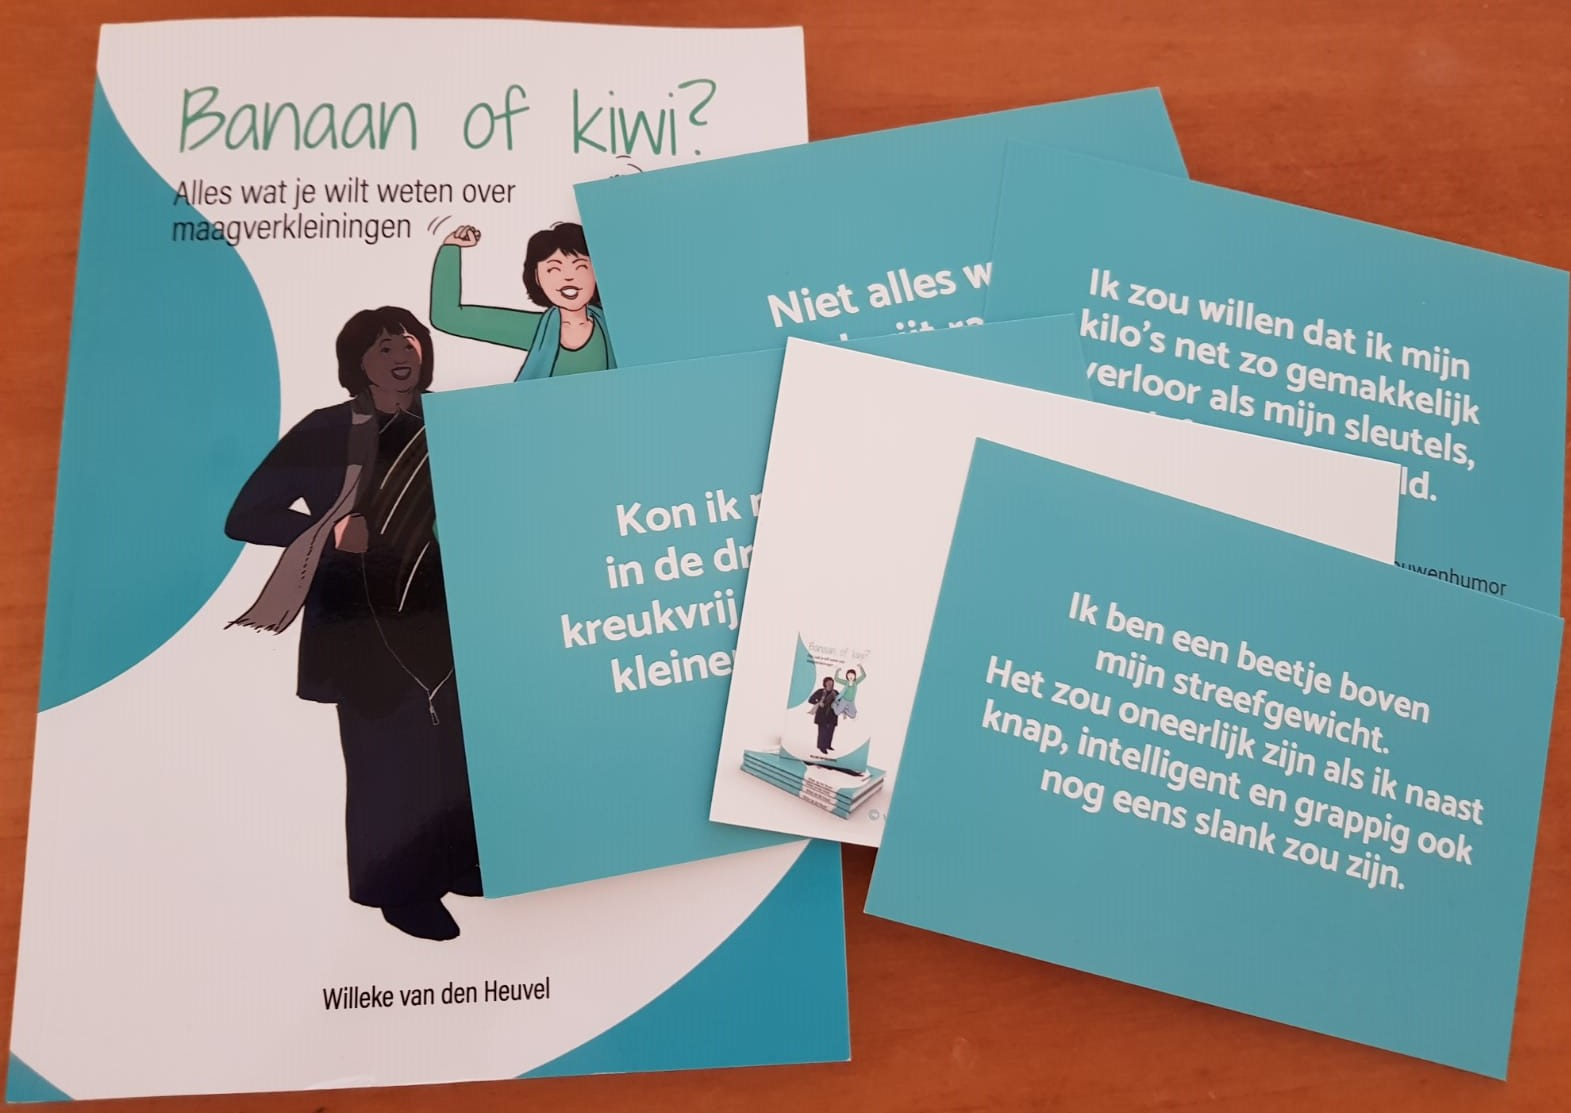 Banaan of kiwi Willeke van den Heuvel